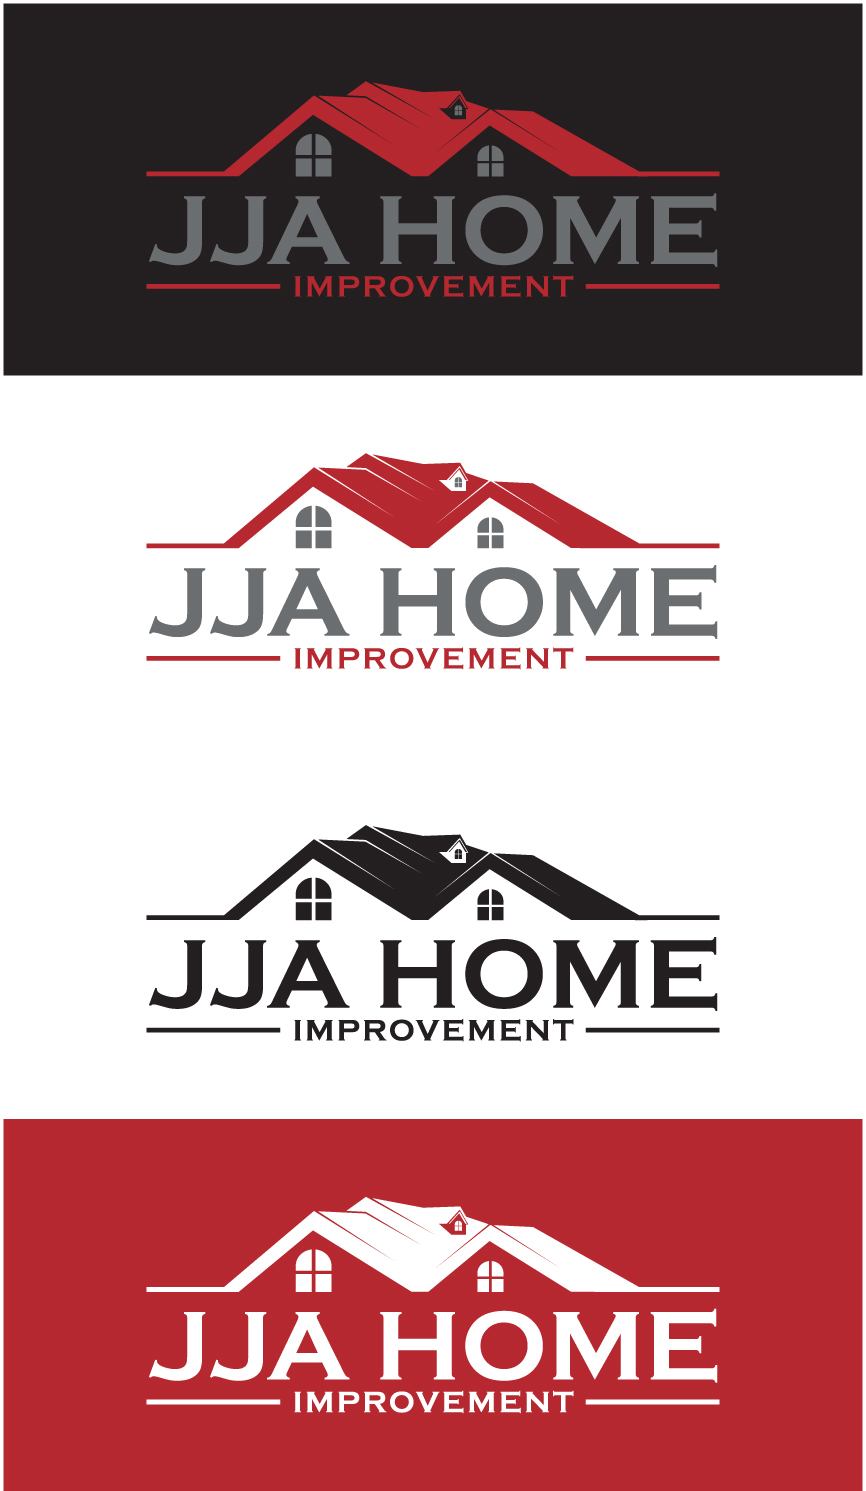 Logo Design By Ngepet_art   Entry No. 15 In The Logo Design Contest JJA Home